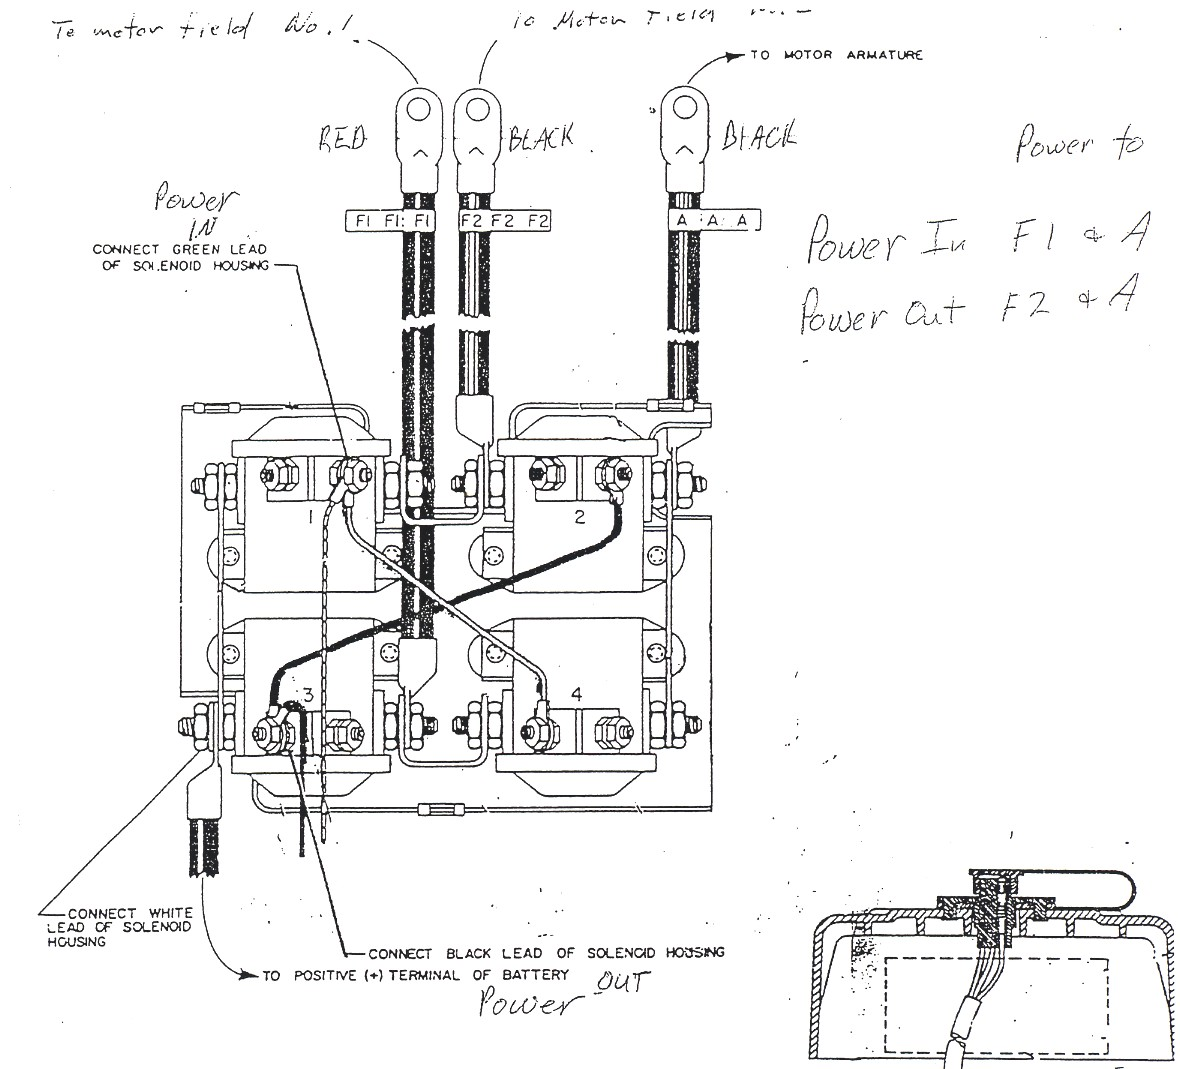 80 untitled_0689e0d674eea10f43090f1fea7c785fc8250009 need help wiring winch if someone could look over my diagram 12 volt winch solenoid wiring diagram at soozxer.org